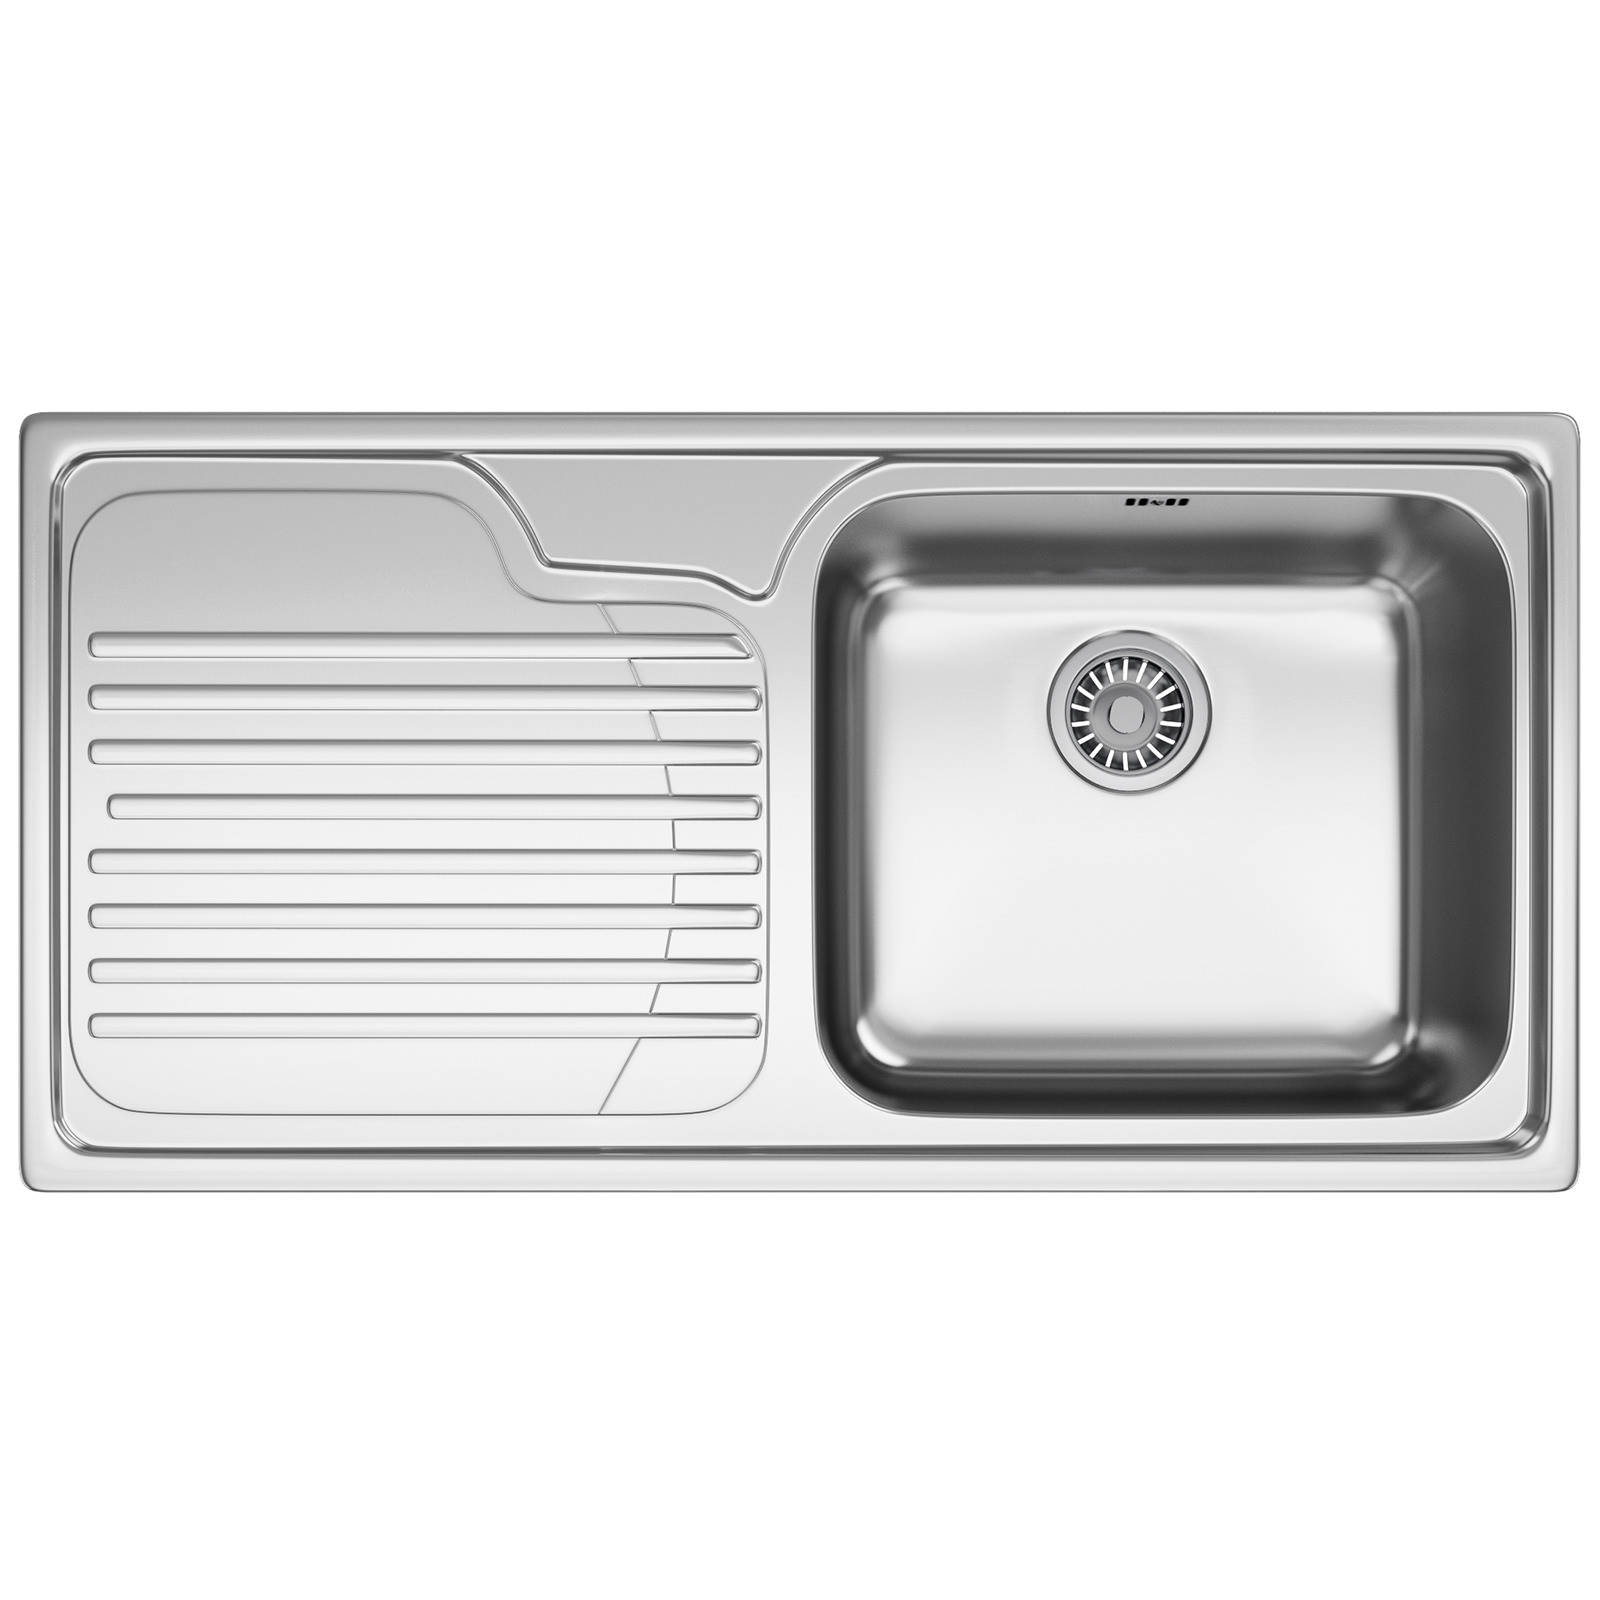 Franke Galassia Sink : Franke Galassia GAX 611 Stainless Steel 1.0 Bowl Kitchen Inset Sink ...